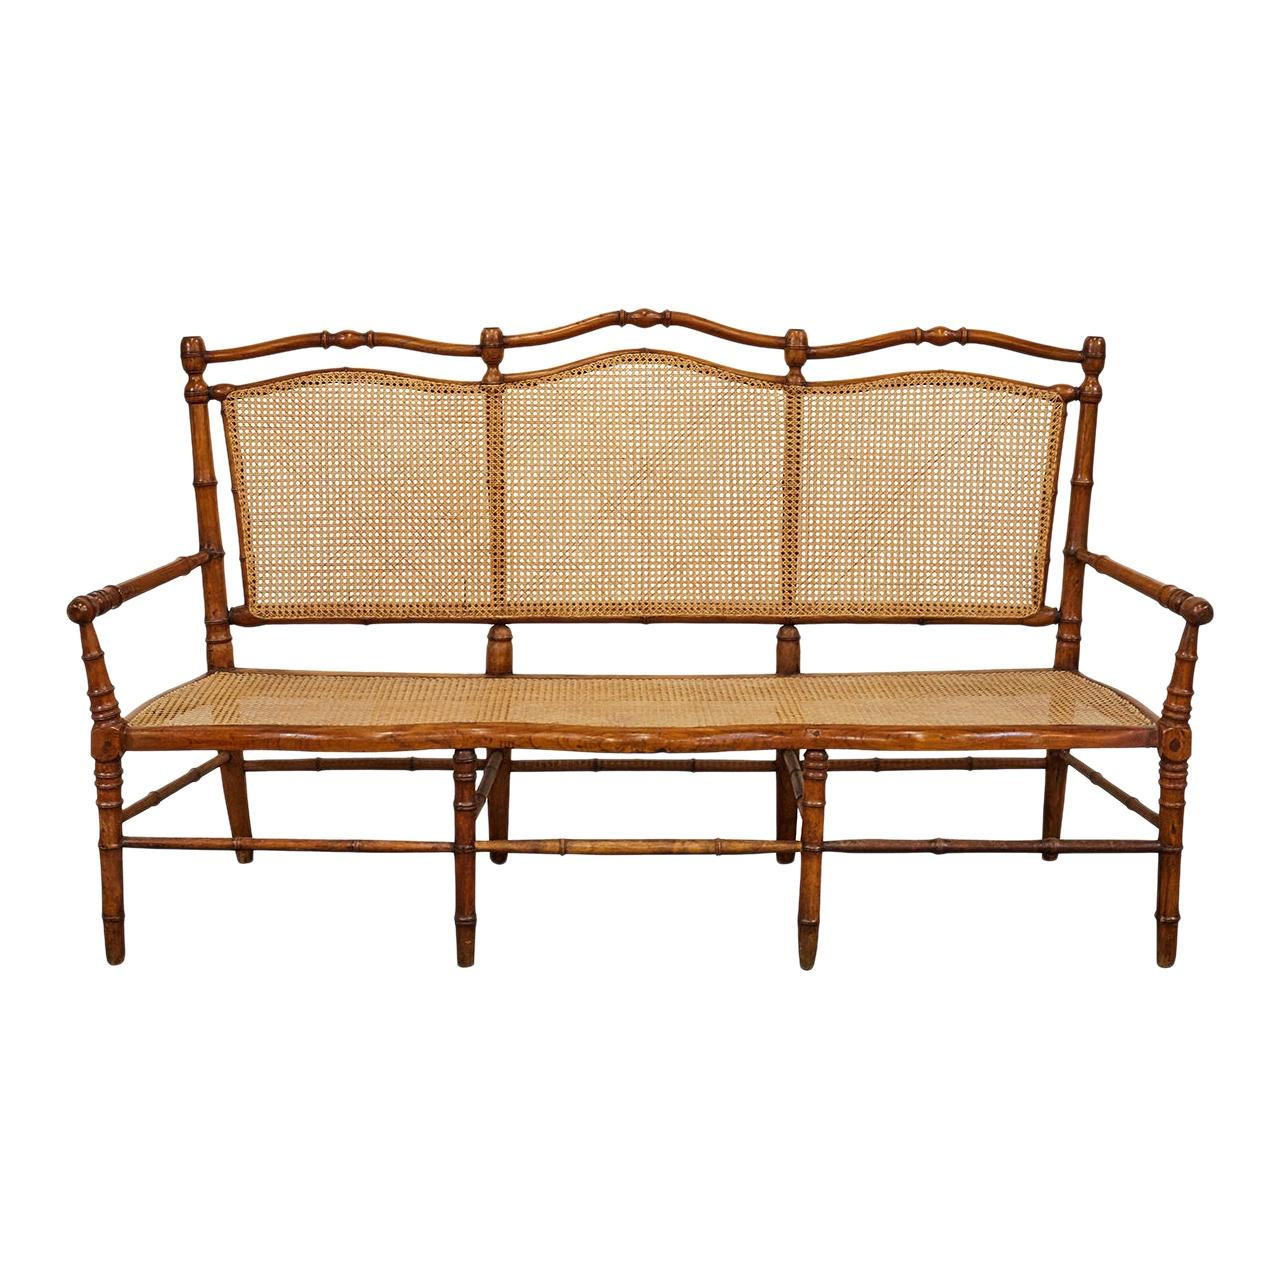 New Real Bamboo Bench Seating Storage Indoor or Outdoor Asian Zen Tiki Furniture